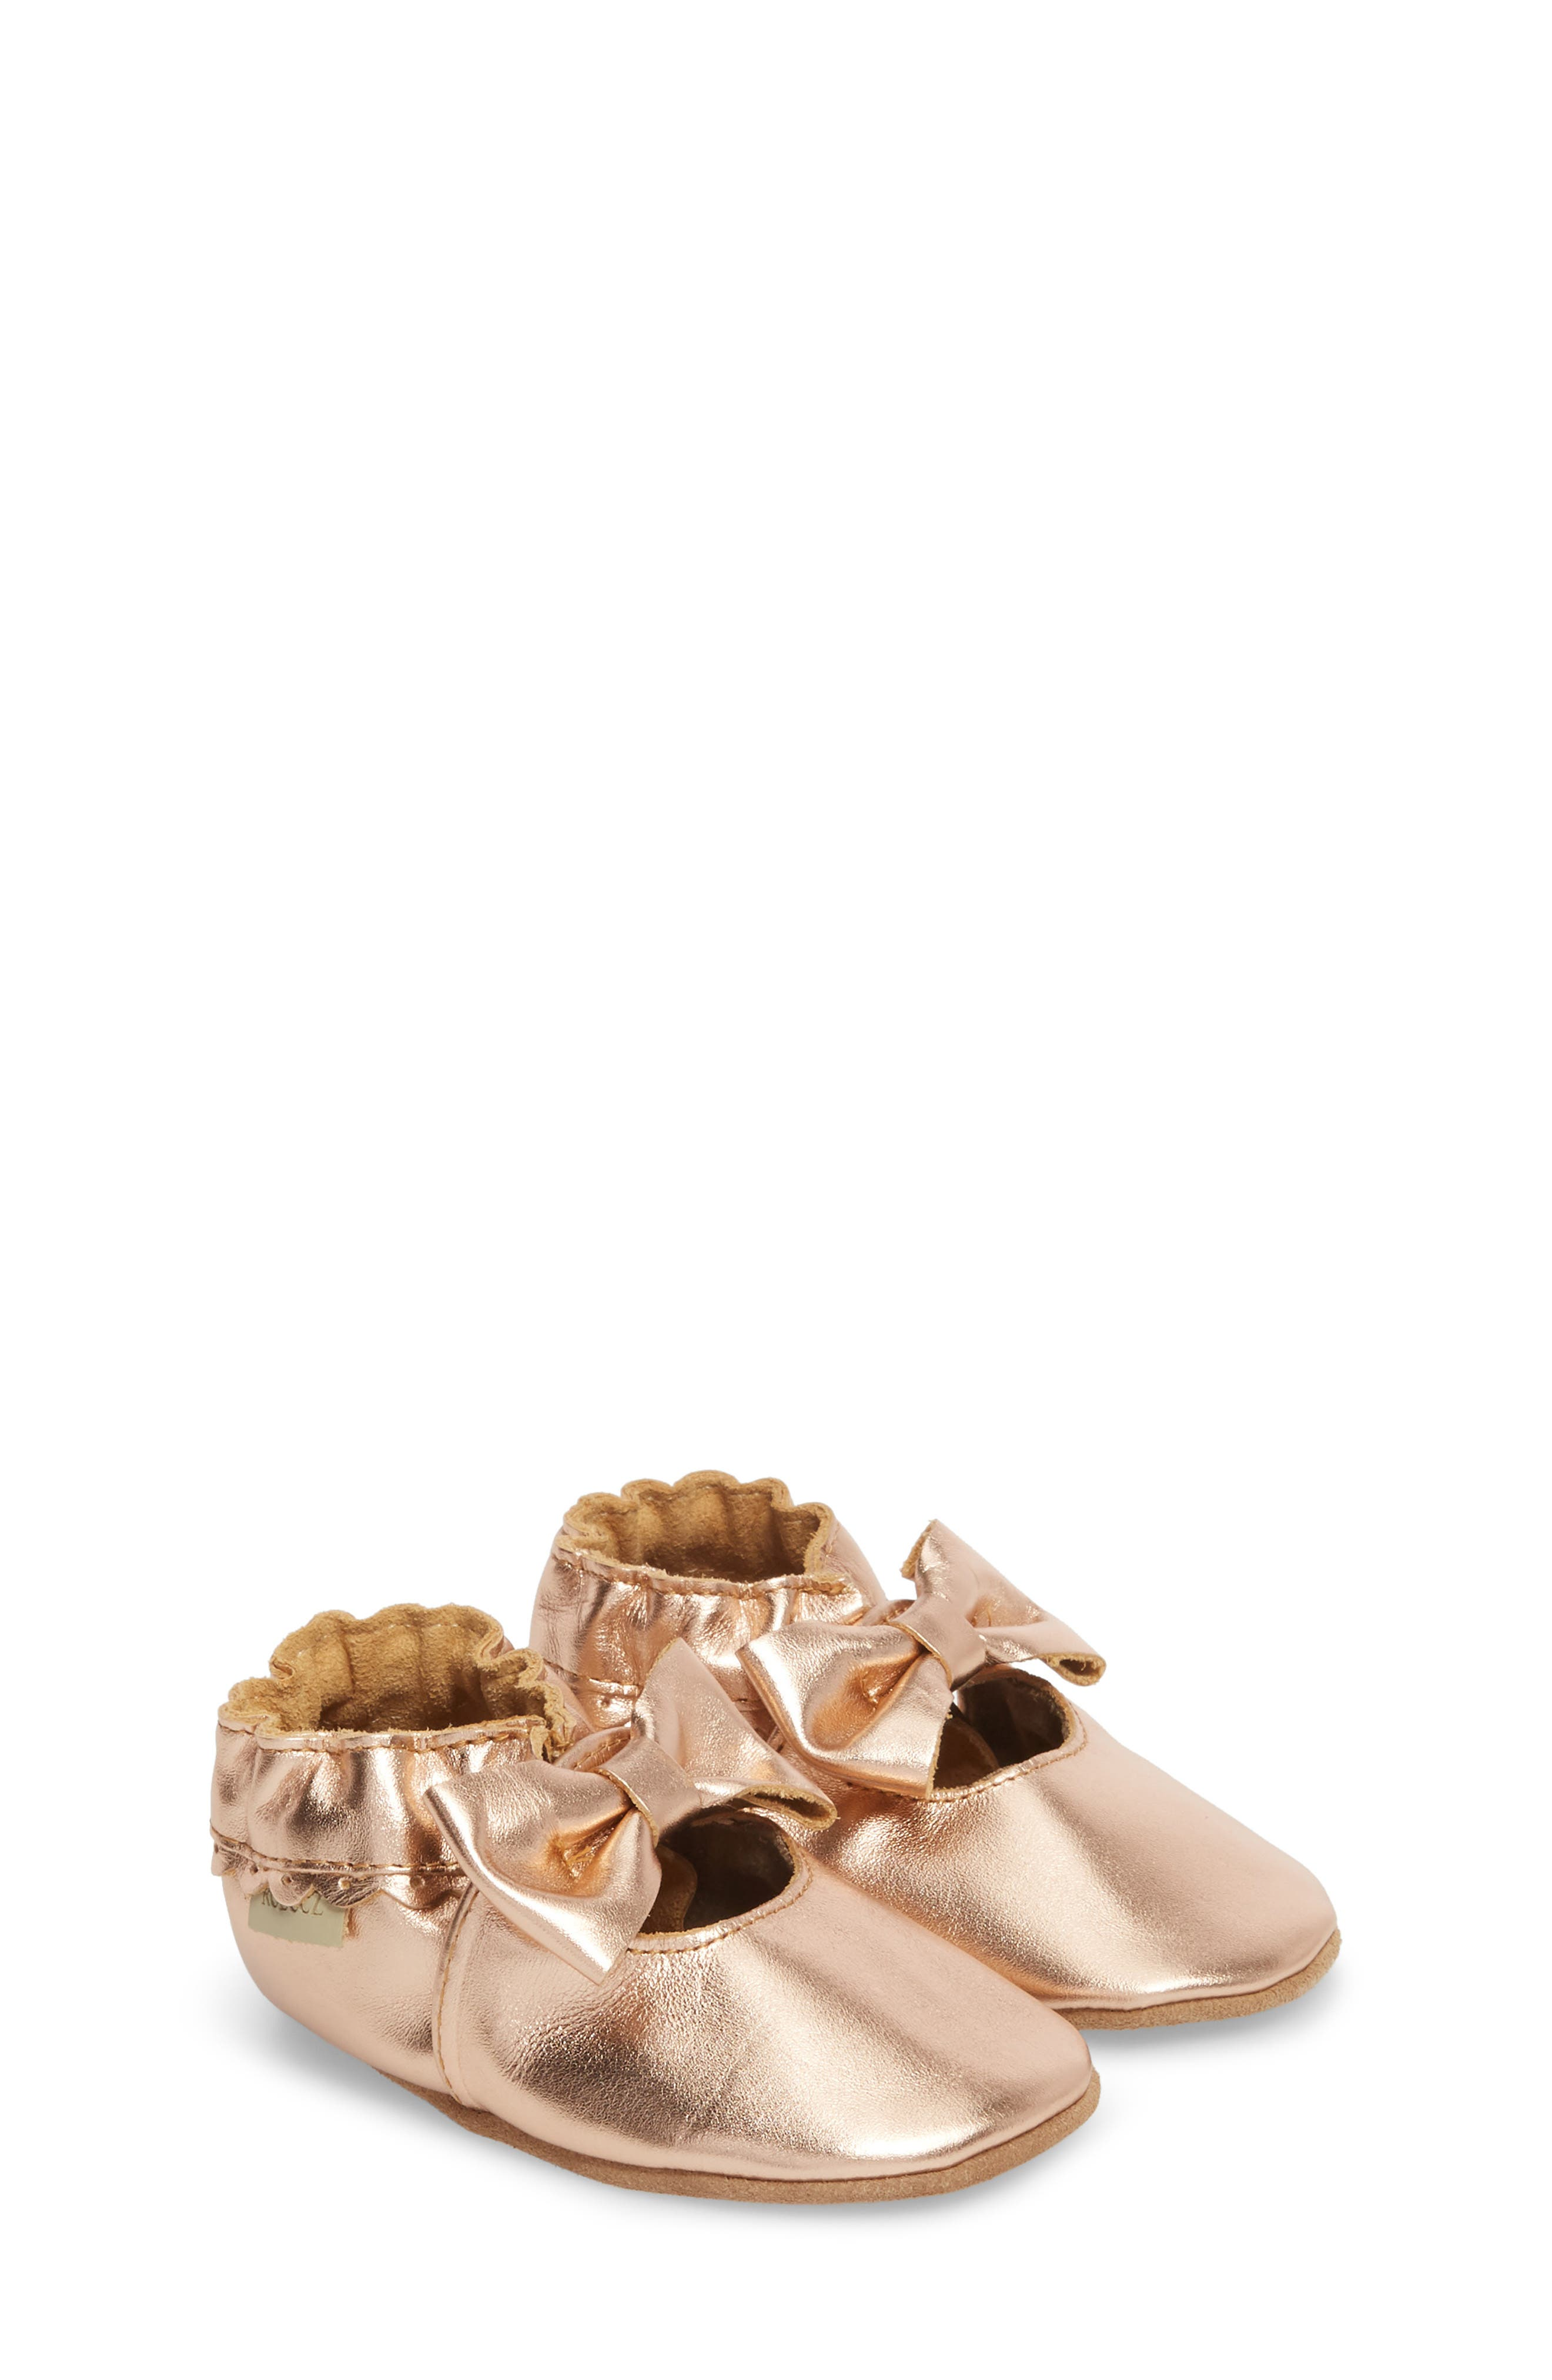 ROBEEZ<SUP>®</SUP>, Rosie Crib Shoes, Main thumbnail 1, color, ROSE GOLD